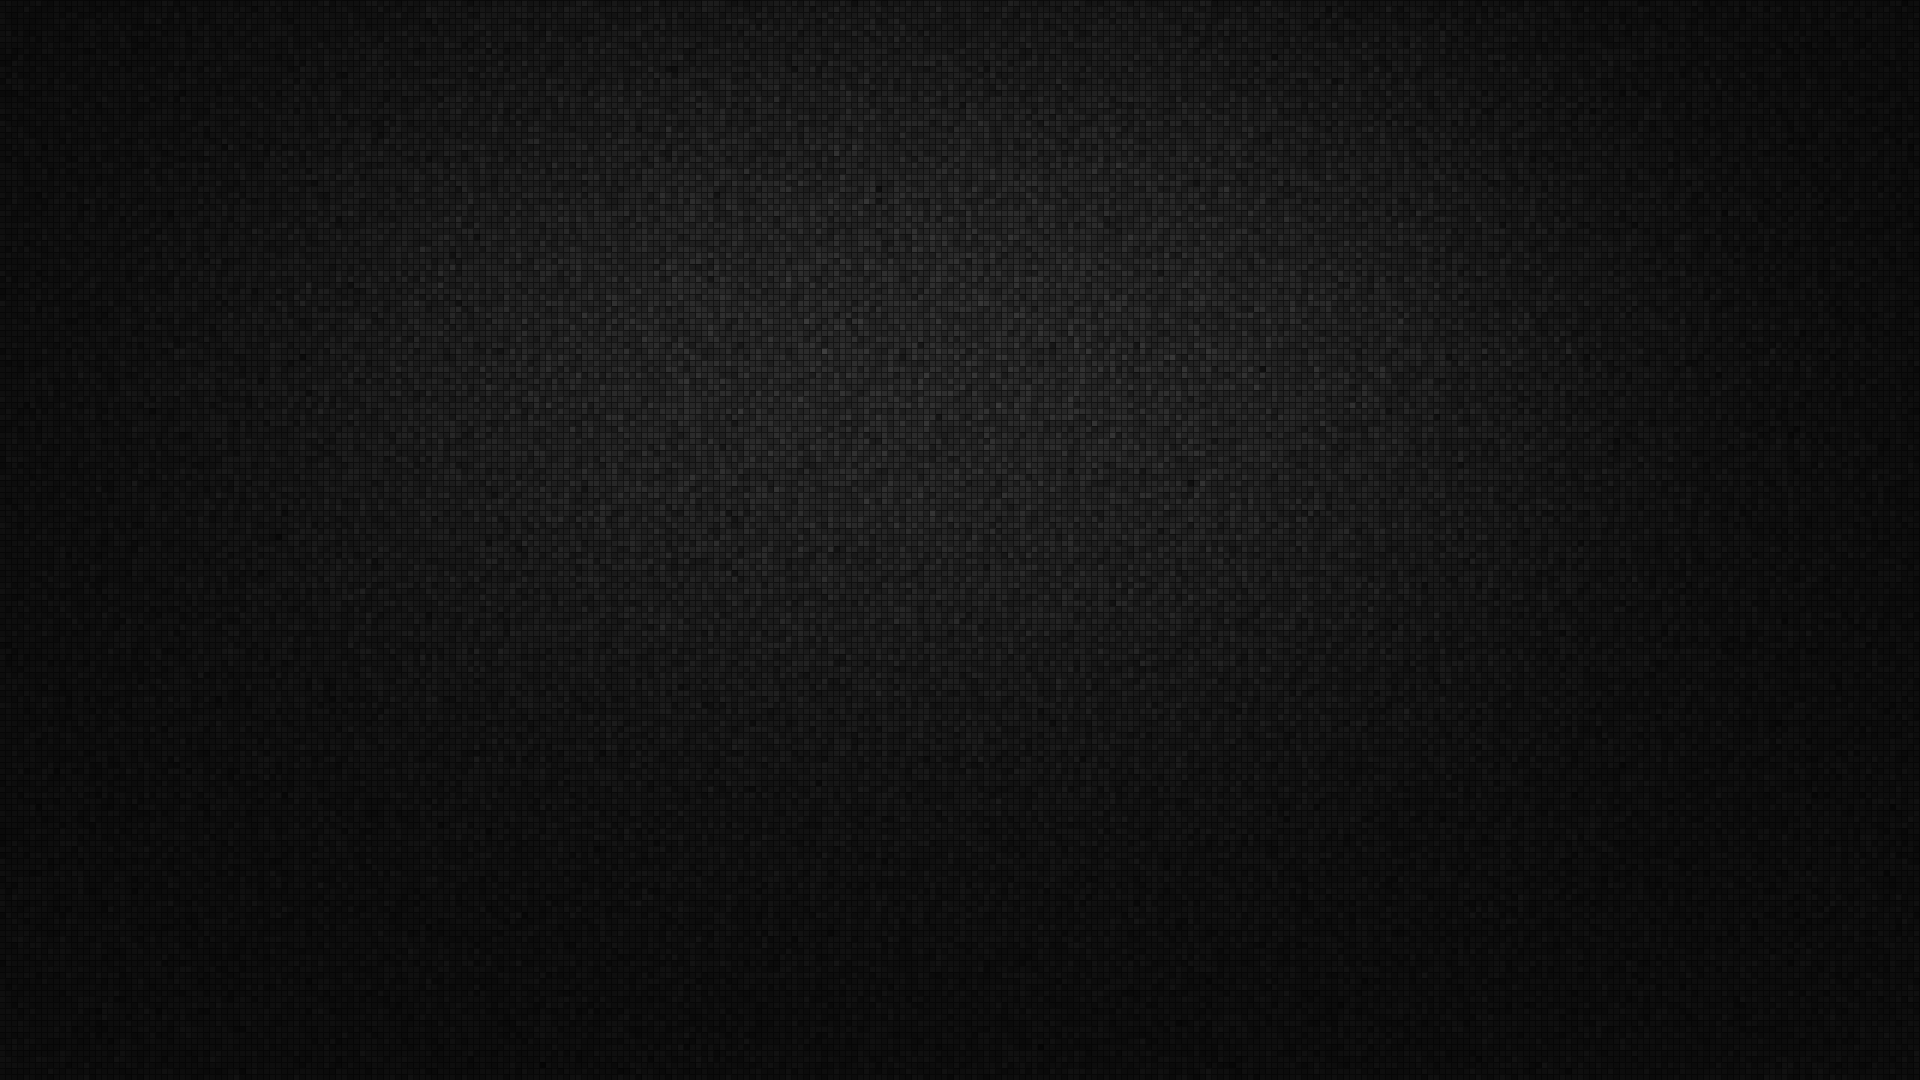 Abstract Black Wallpapers 1920x1080